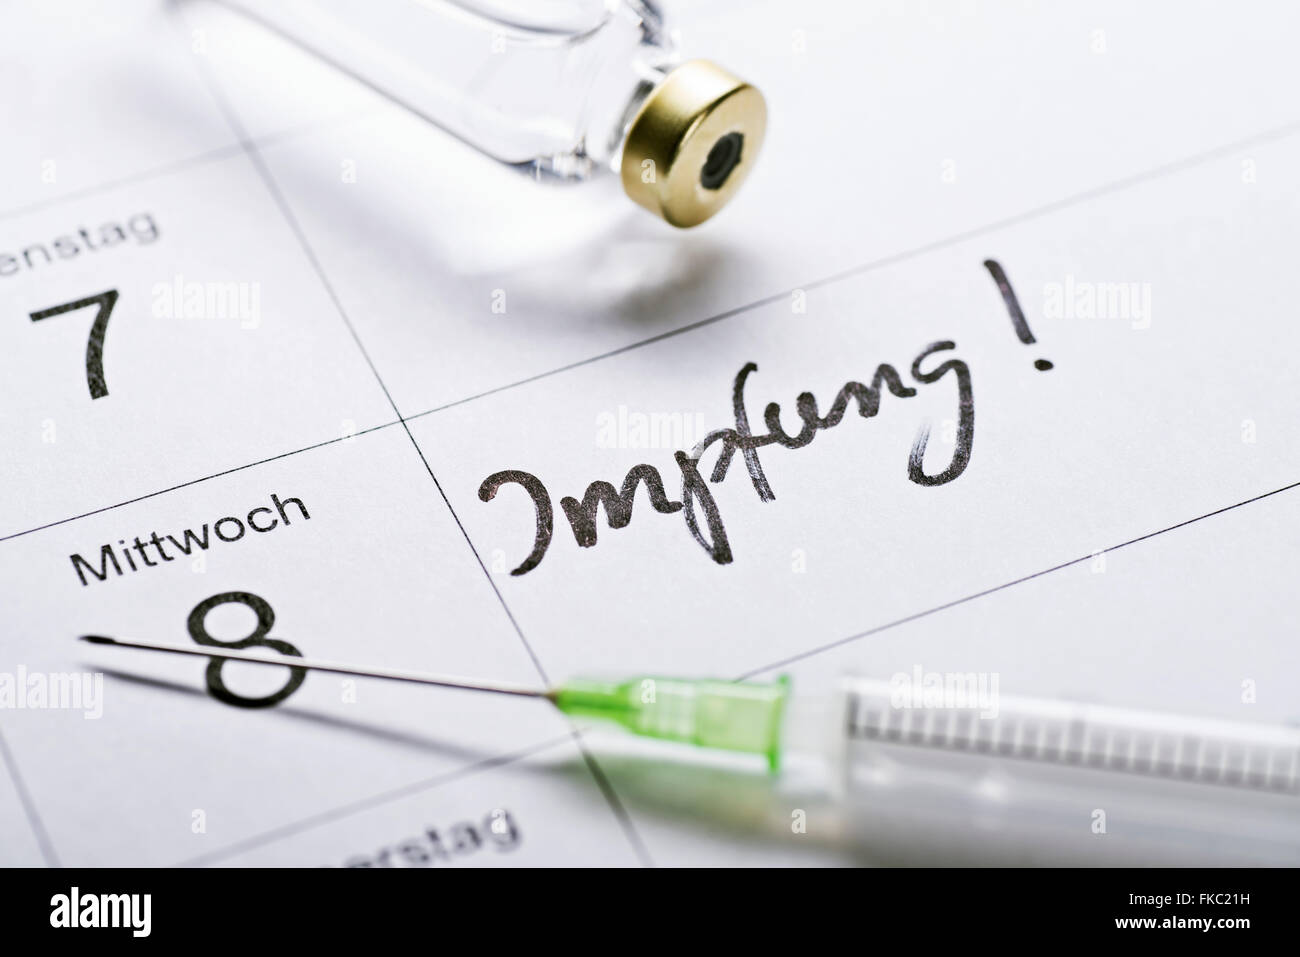 """appointment book with the word """"Impfung"""" for vaccination, a syringe and a vial of vaccine. Stock Photo"""